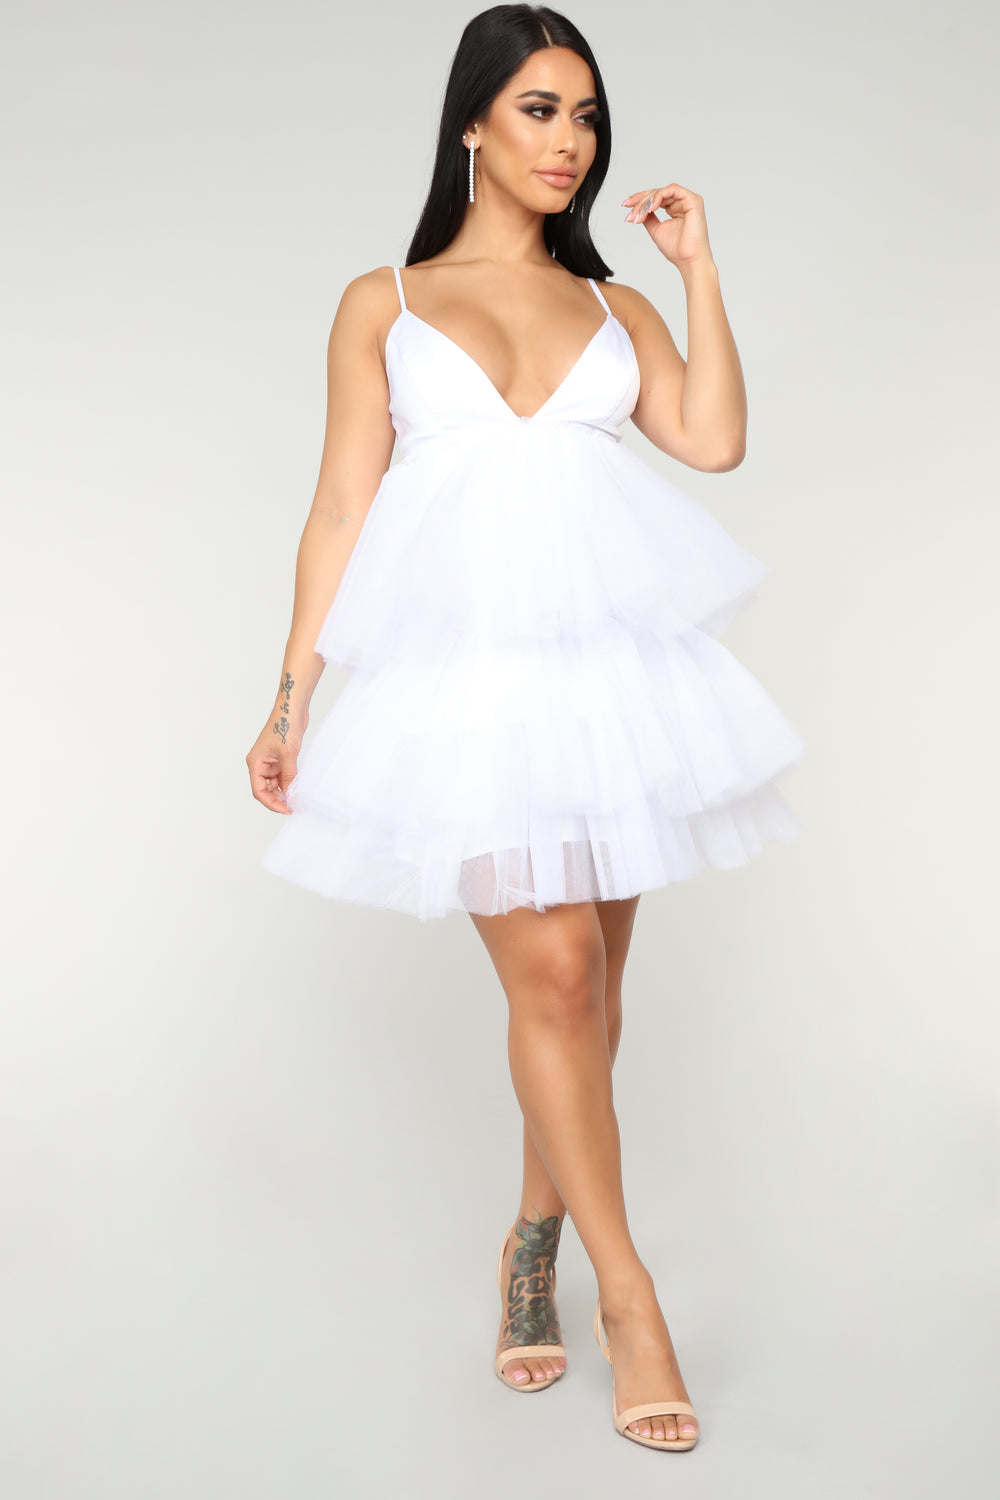 She Bad Ruffle Dress - White